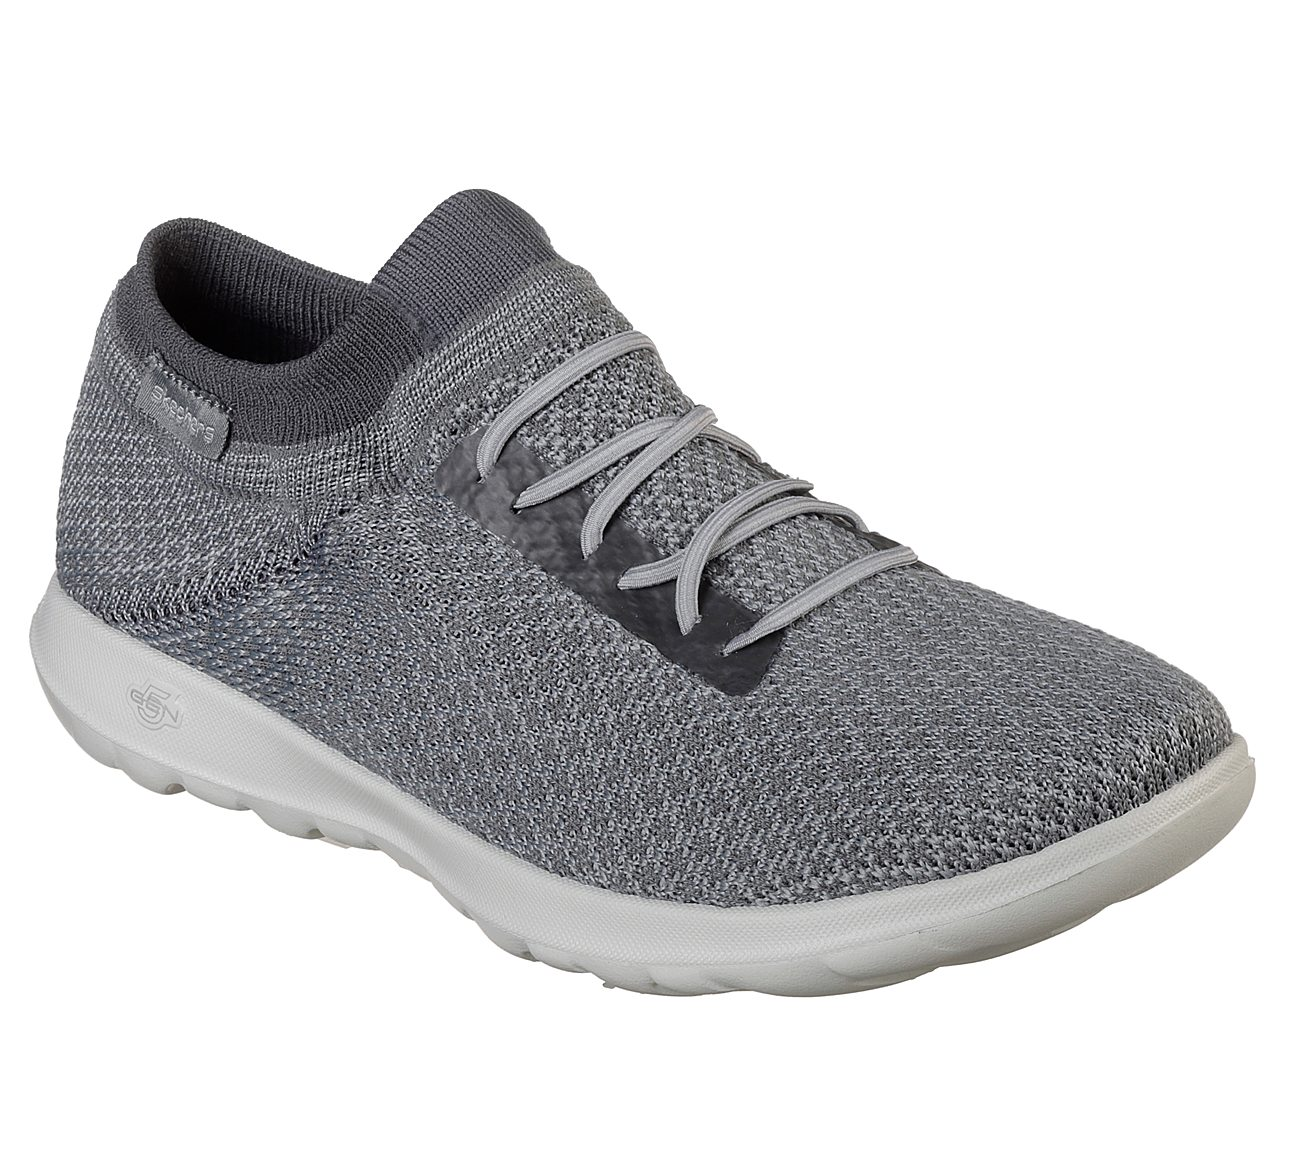 9a0effa1859 Buy SKECHERS Skechers GOwalk Lite - Splendid Skechers Performance ...